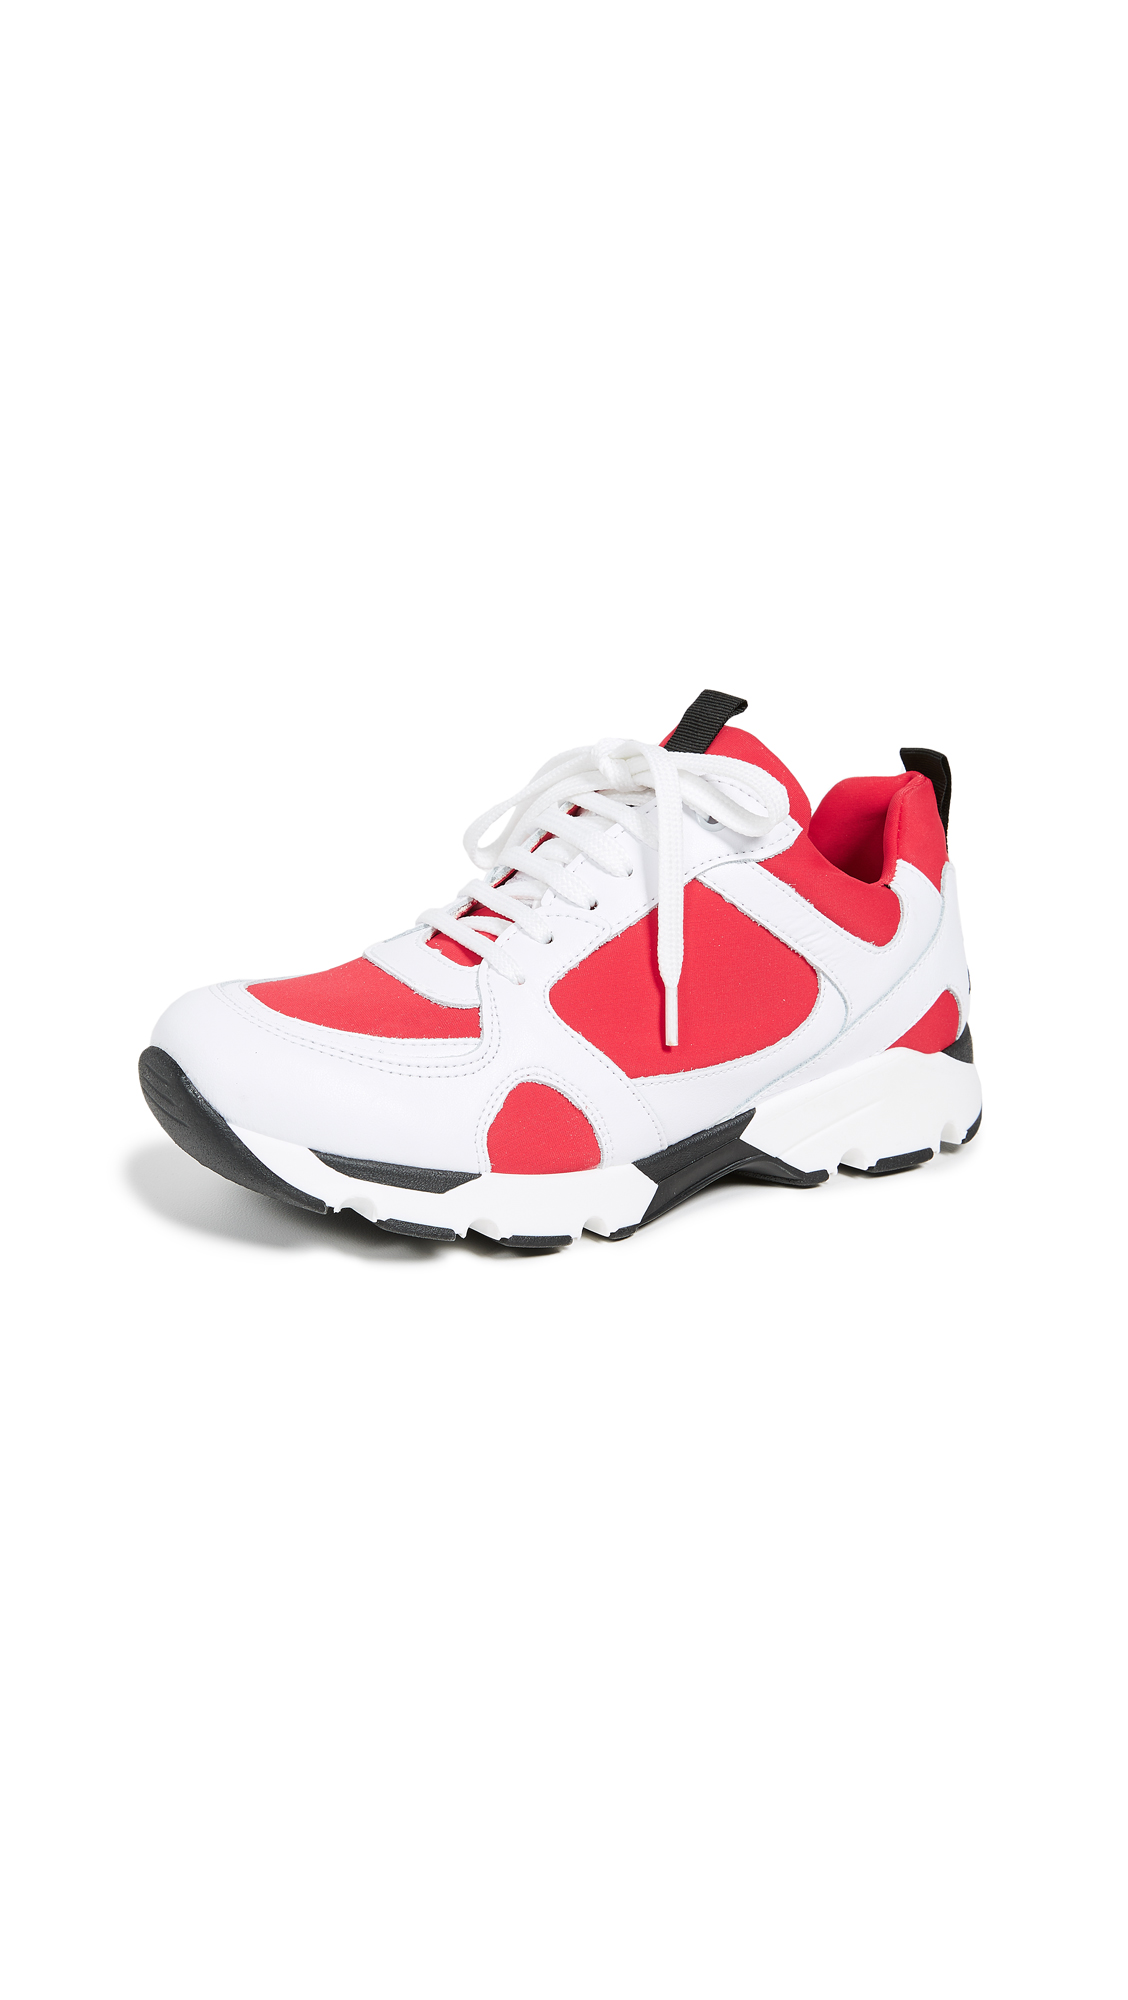 Joshua Sanders Sporty Chic 80 Sneakers - Hydro Prince